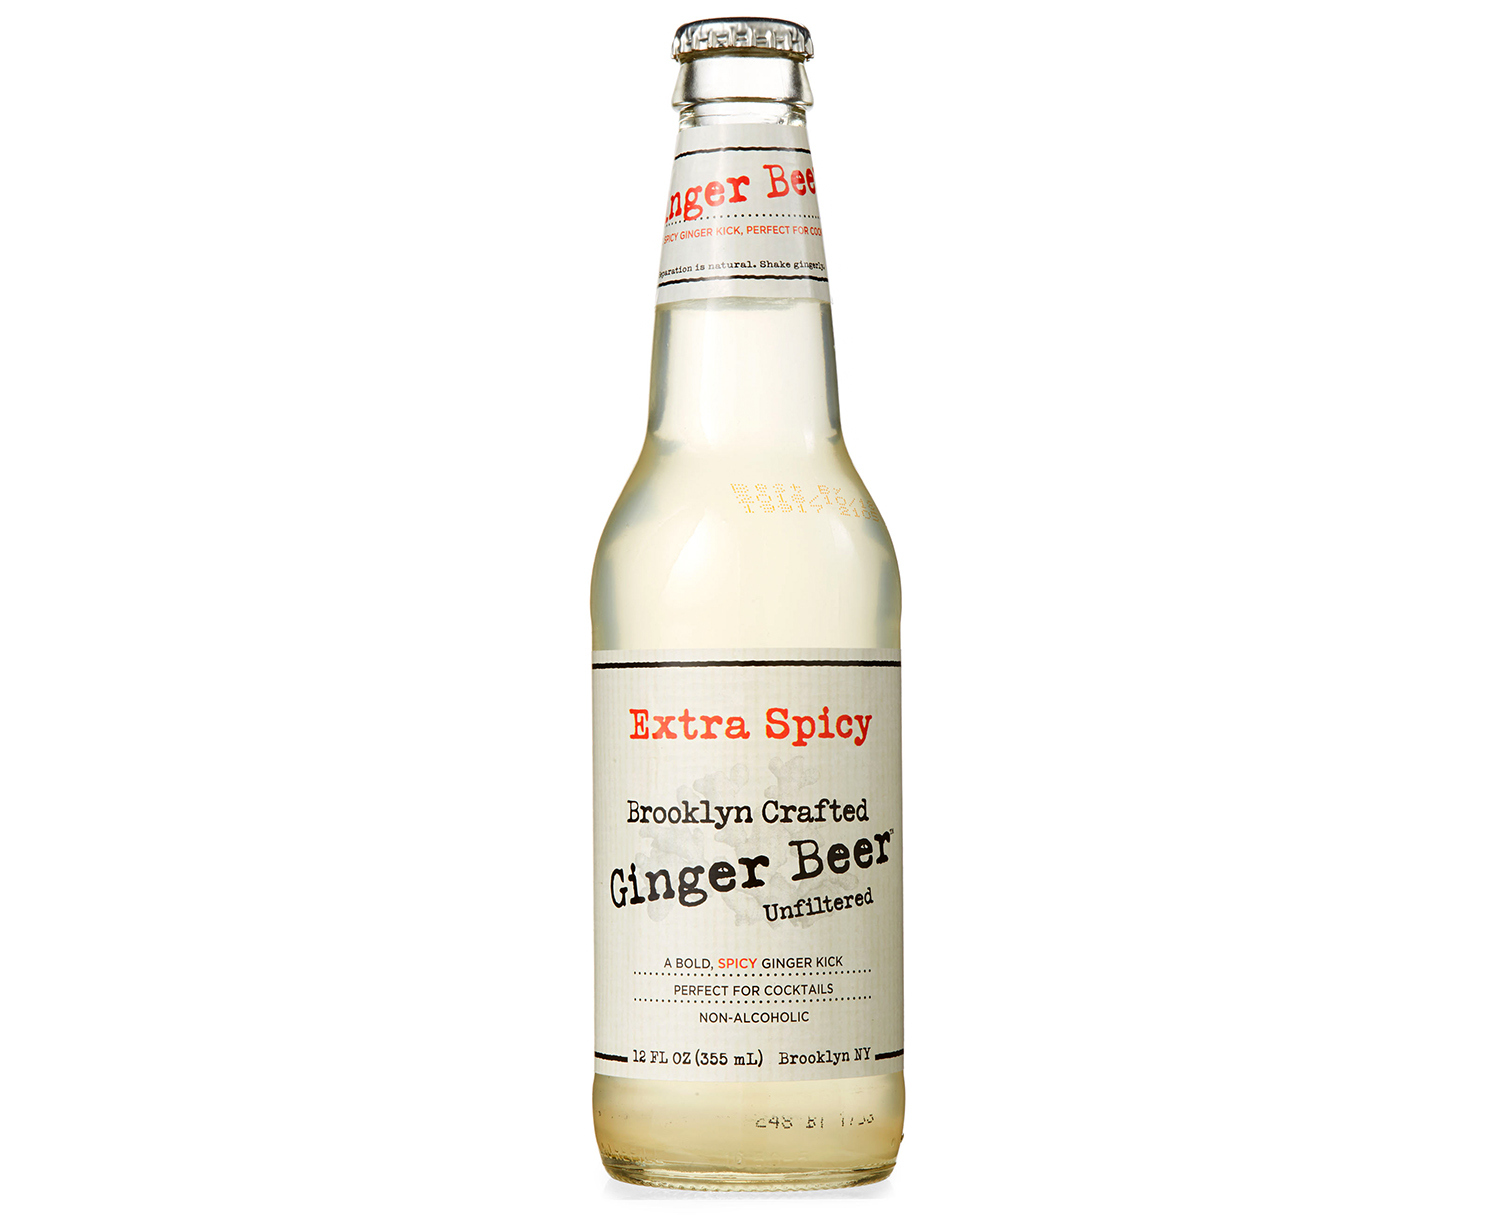 brooklyn crafted extra spicy ginger beer